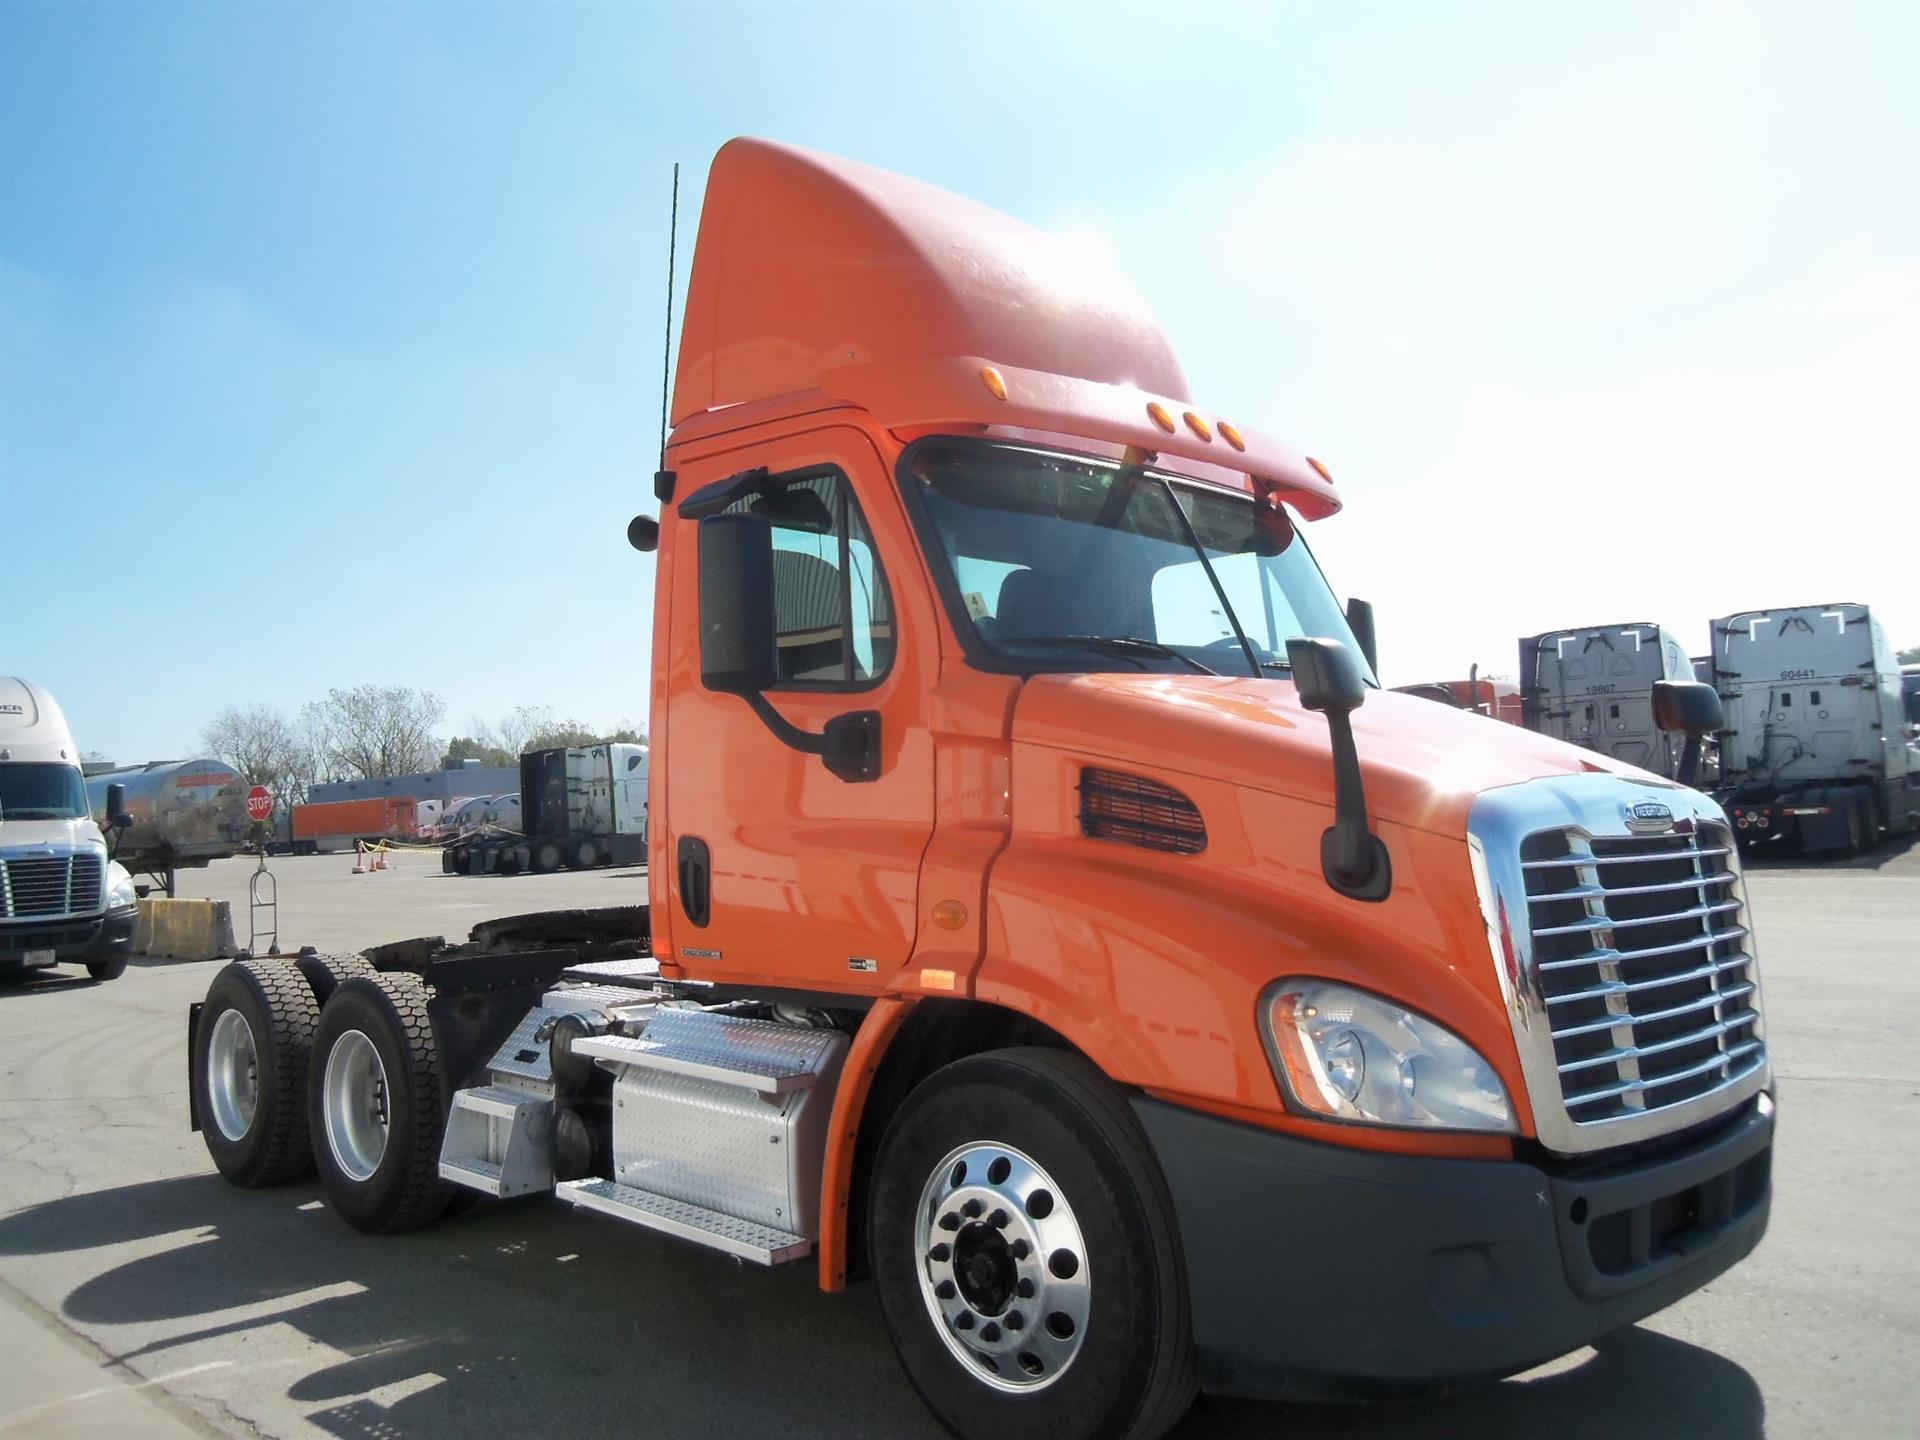 USED 2012 FREIGHTLINER CASCADIA DAYCAB TRUCK #83385